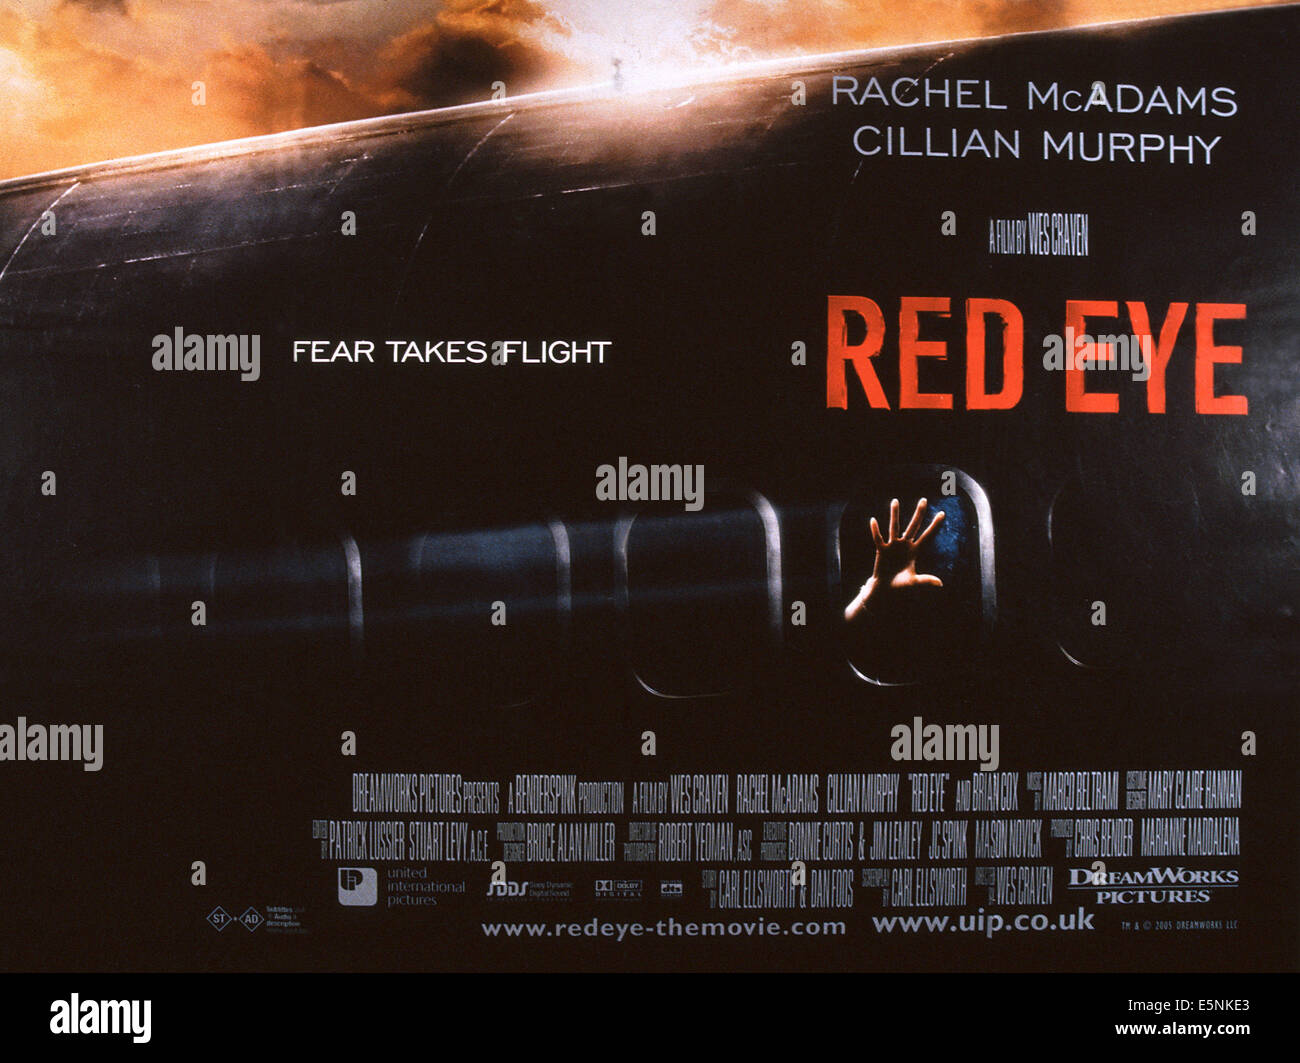 RED EYE, US poster, 2005, © DreamWorks/courtesy Everett Collection - Stock Image